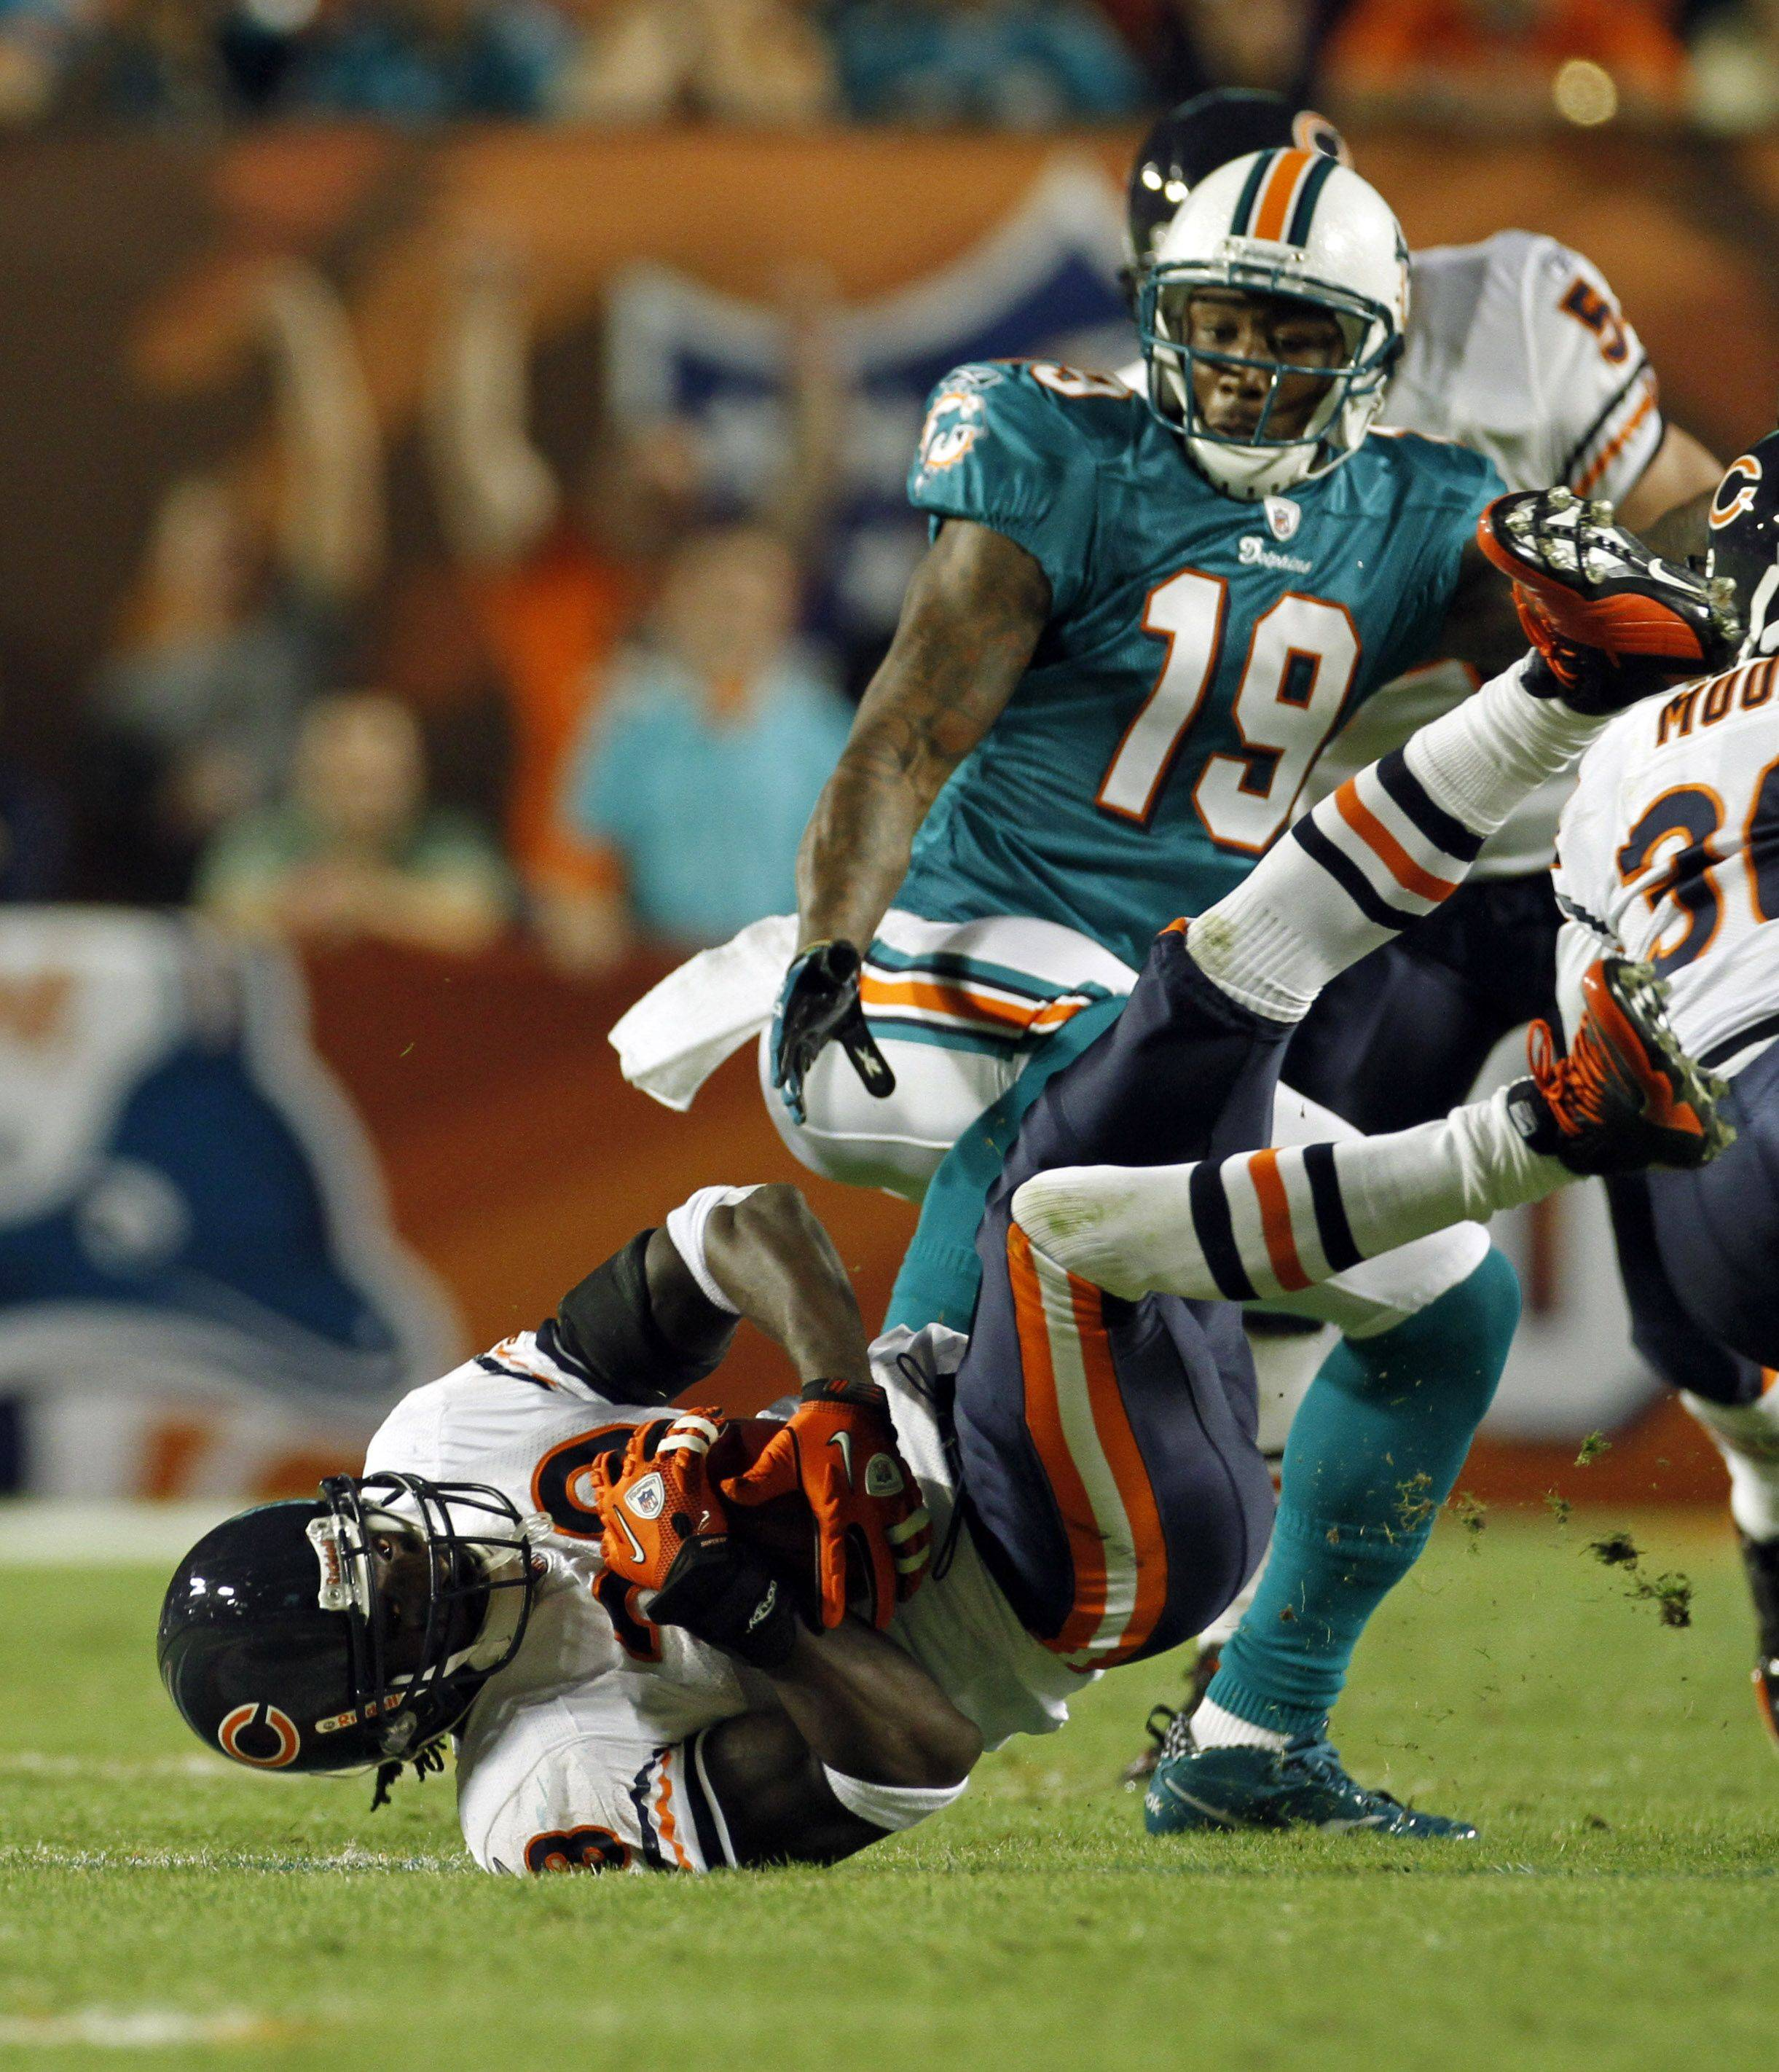 Chicago Bears cornerback Charles Tillman, lower left, intercepts a ball intended for Miami Dolphins wide receiver Brandon Marshall .